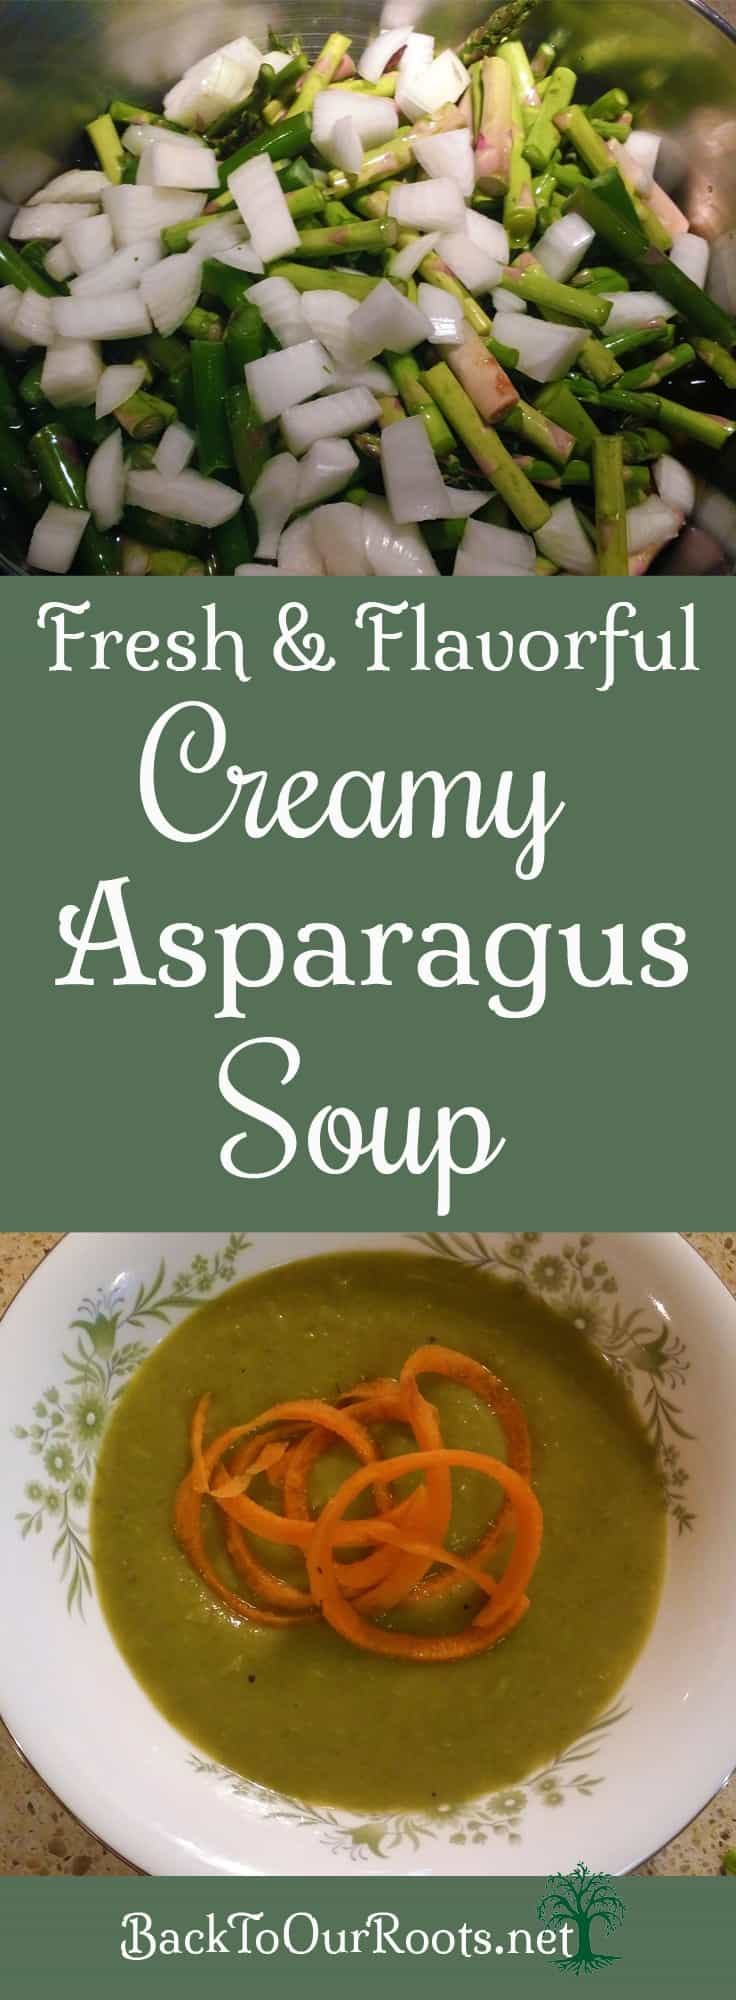 Fresh, Flavorful, Healthy Asparagus Soup